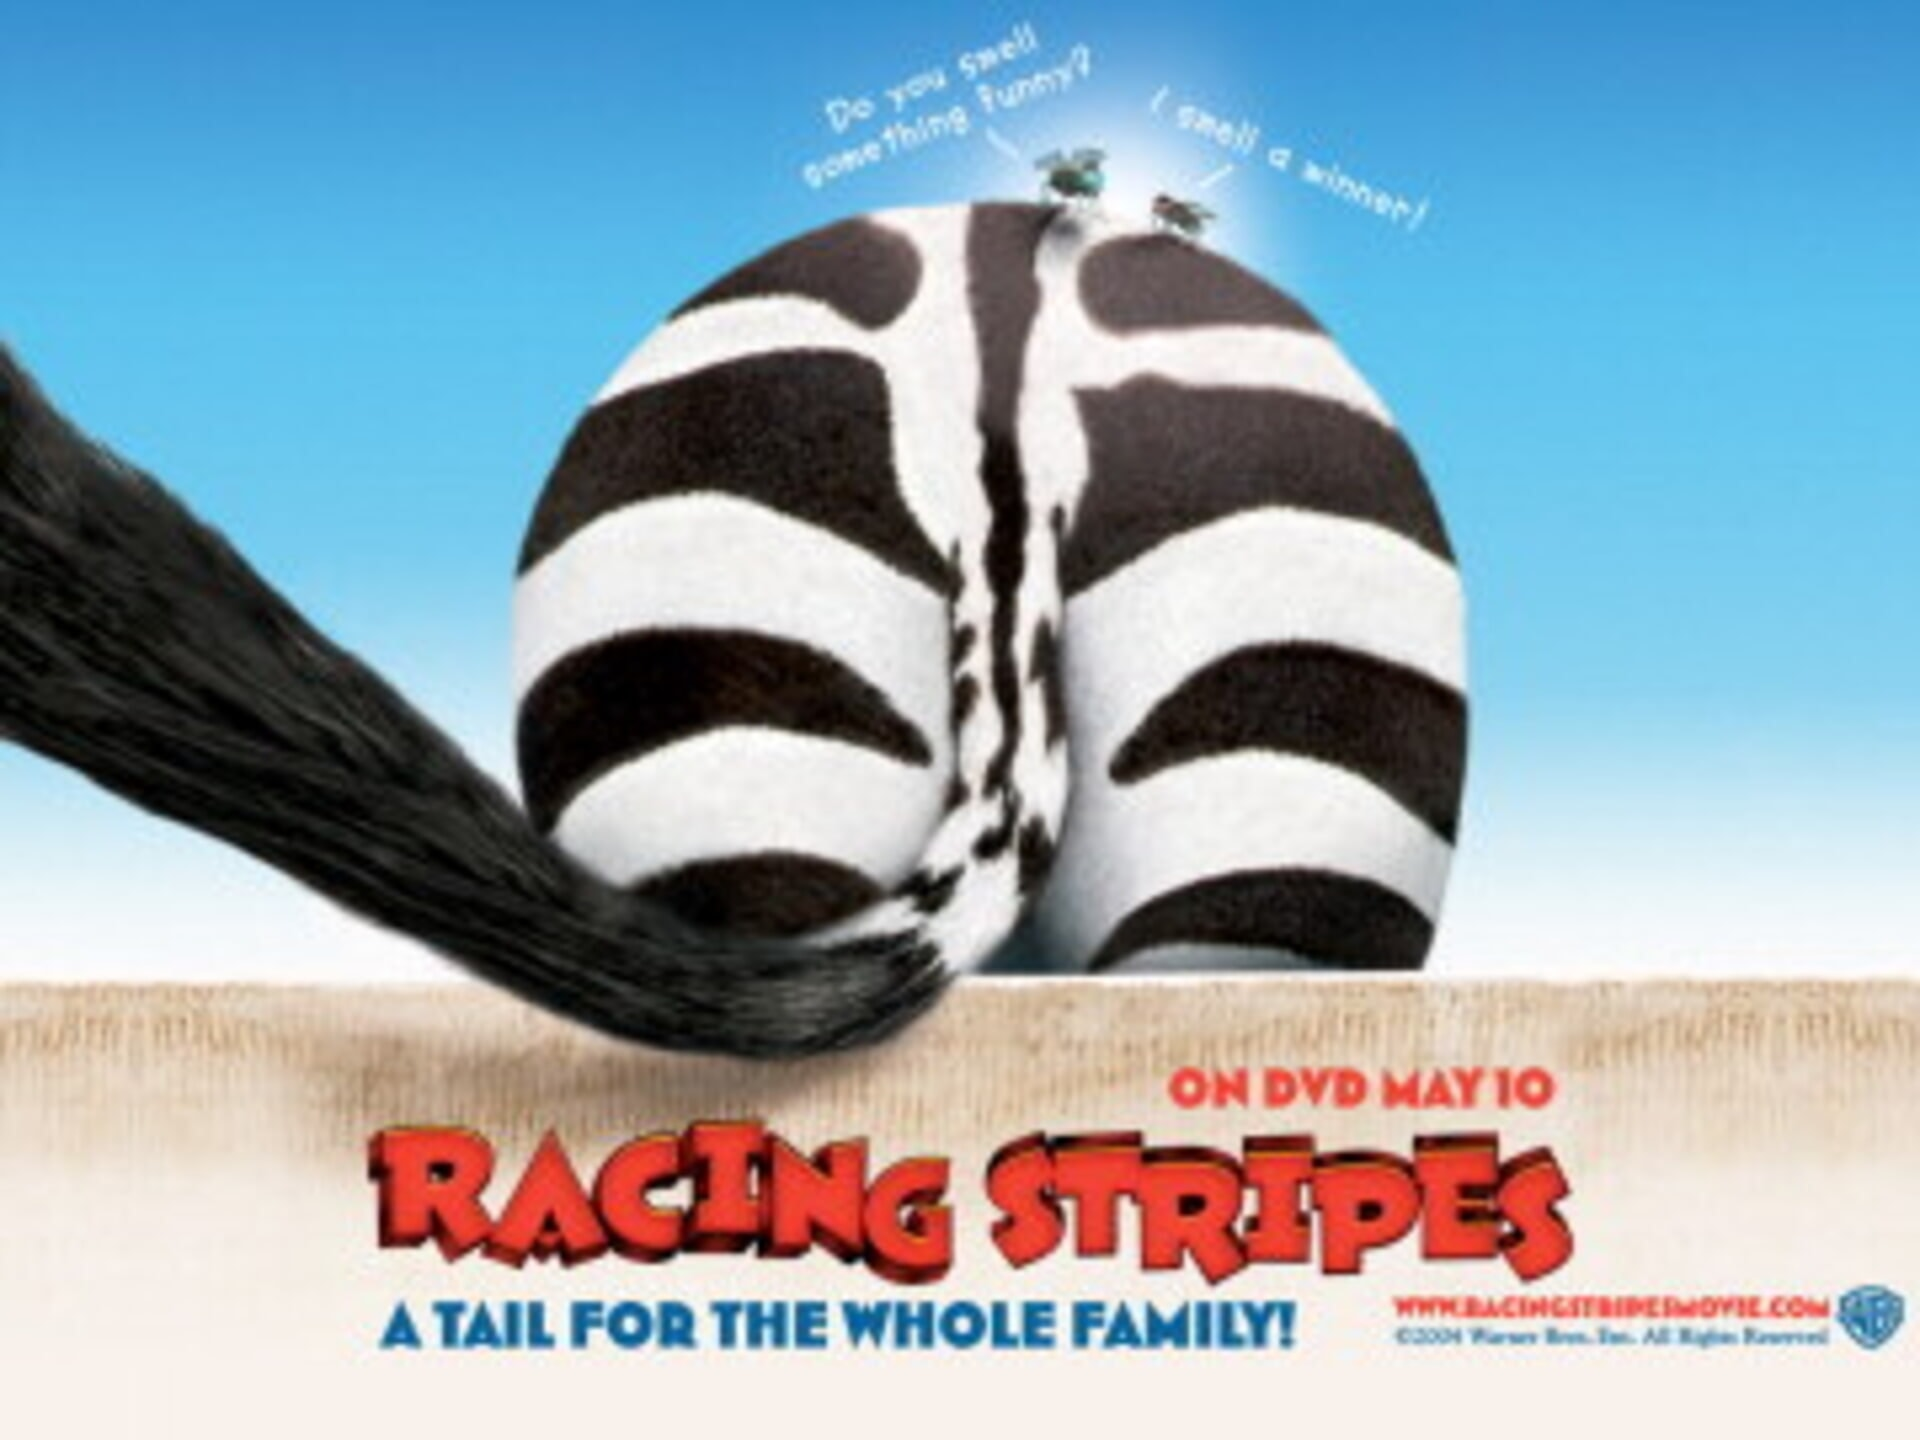 Racing Stripes - Image 51